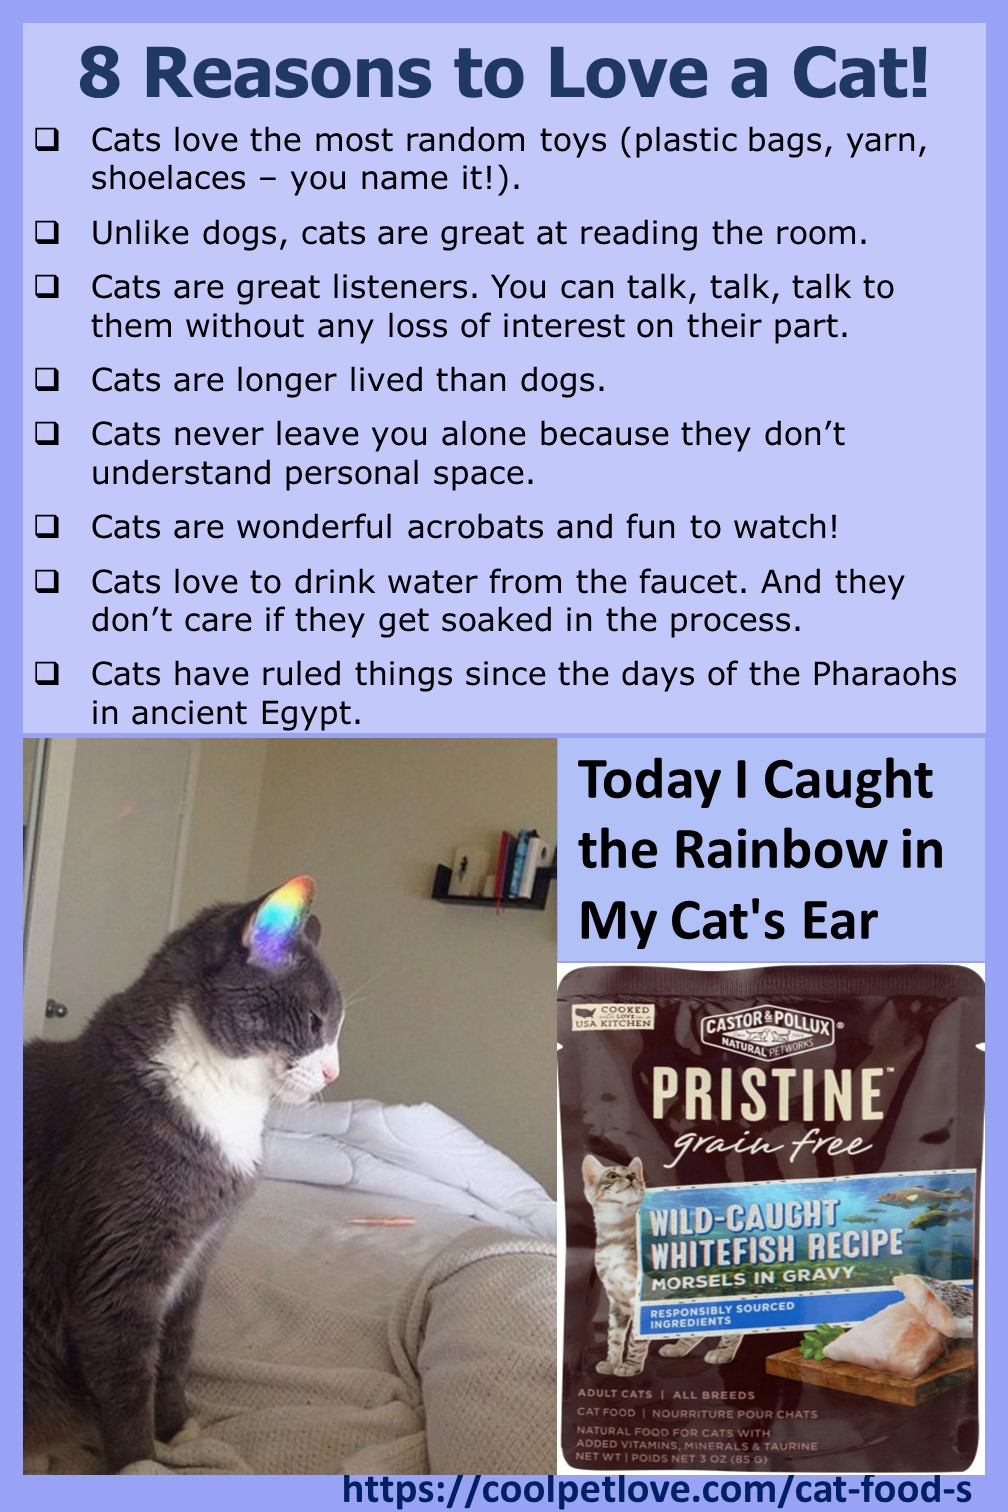 Today I caught a rainbow in my cat's ear #CatLove